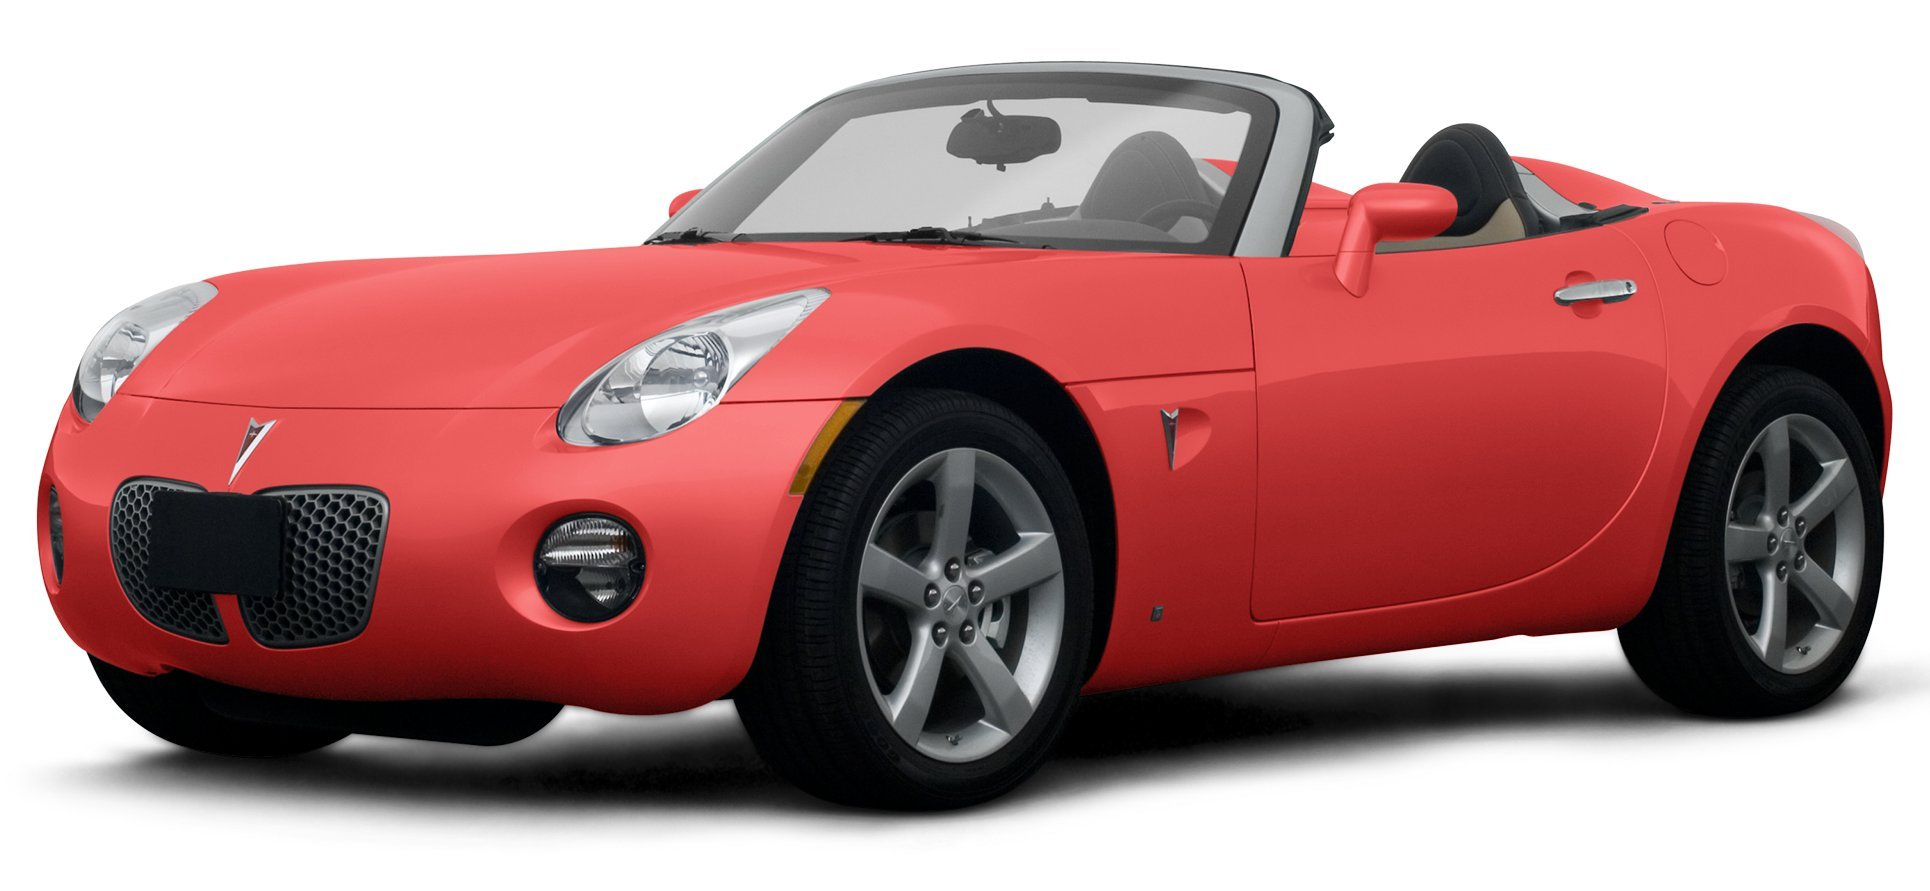 2008 Pontiac Solstice Reviews Images And Specs Vehicles Additional Wiring Diagram For The 1949 Chevrolet Passenger Cars Convertible 2 Door